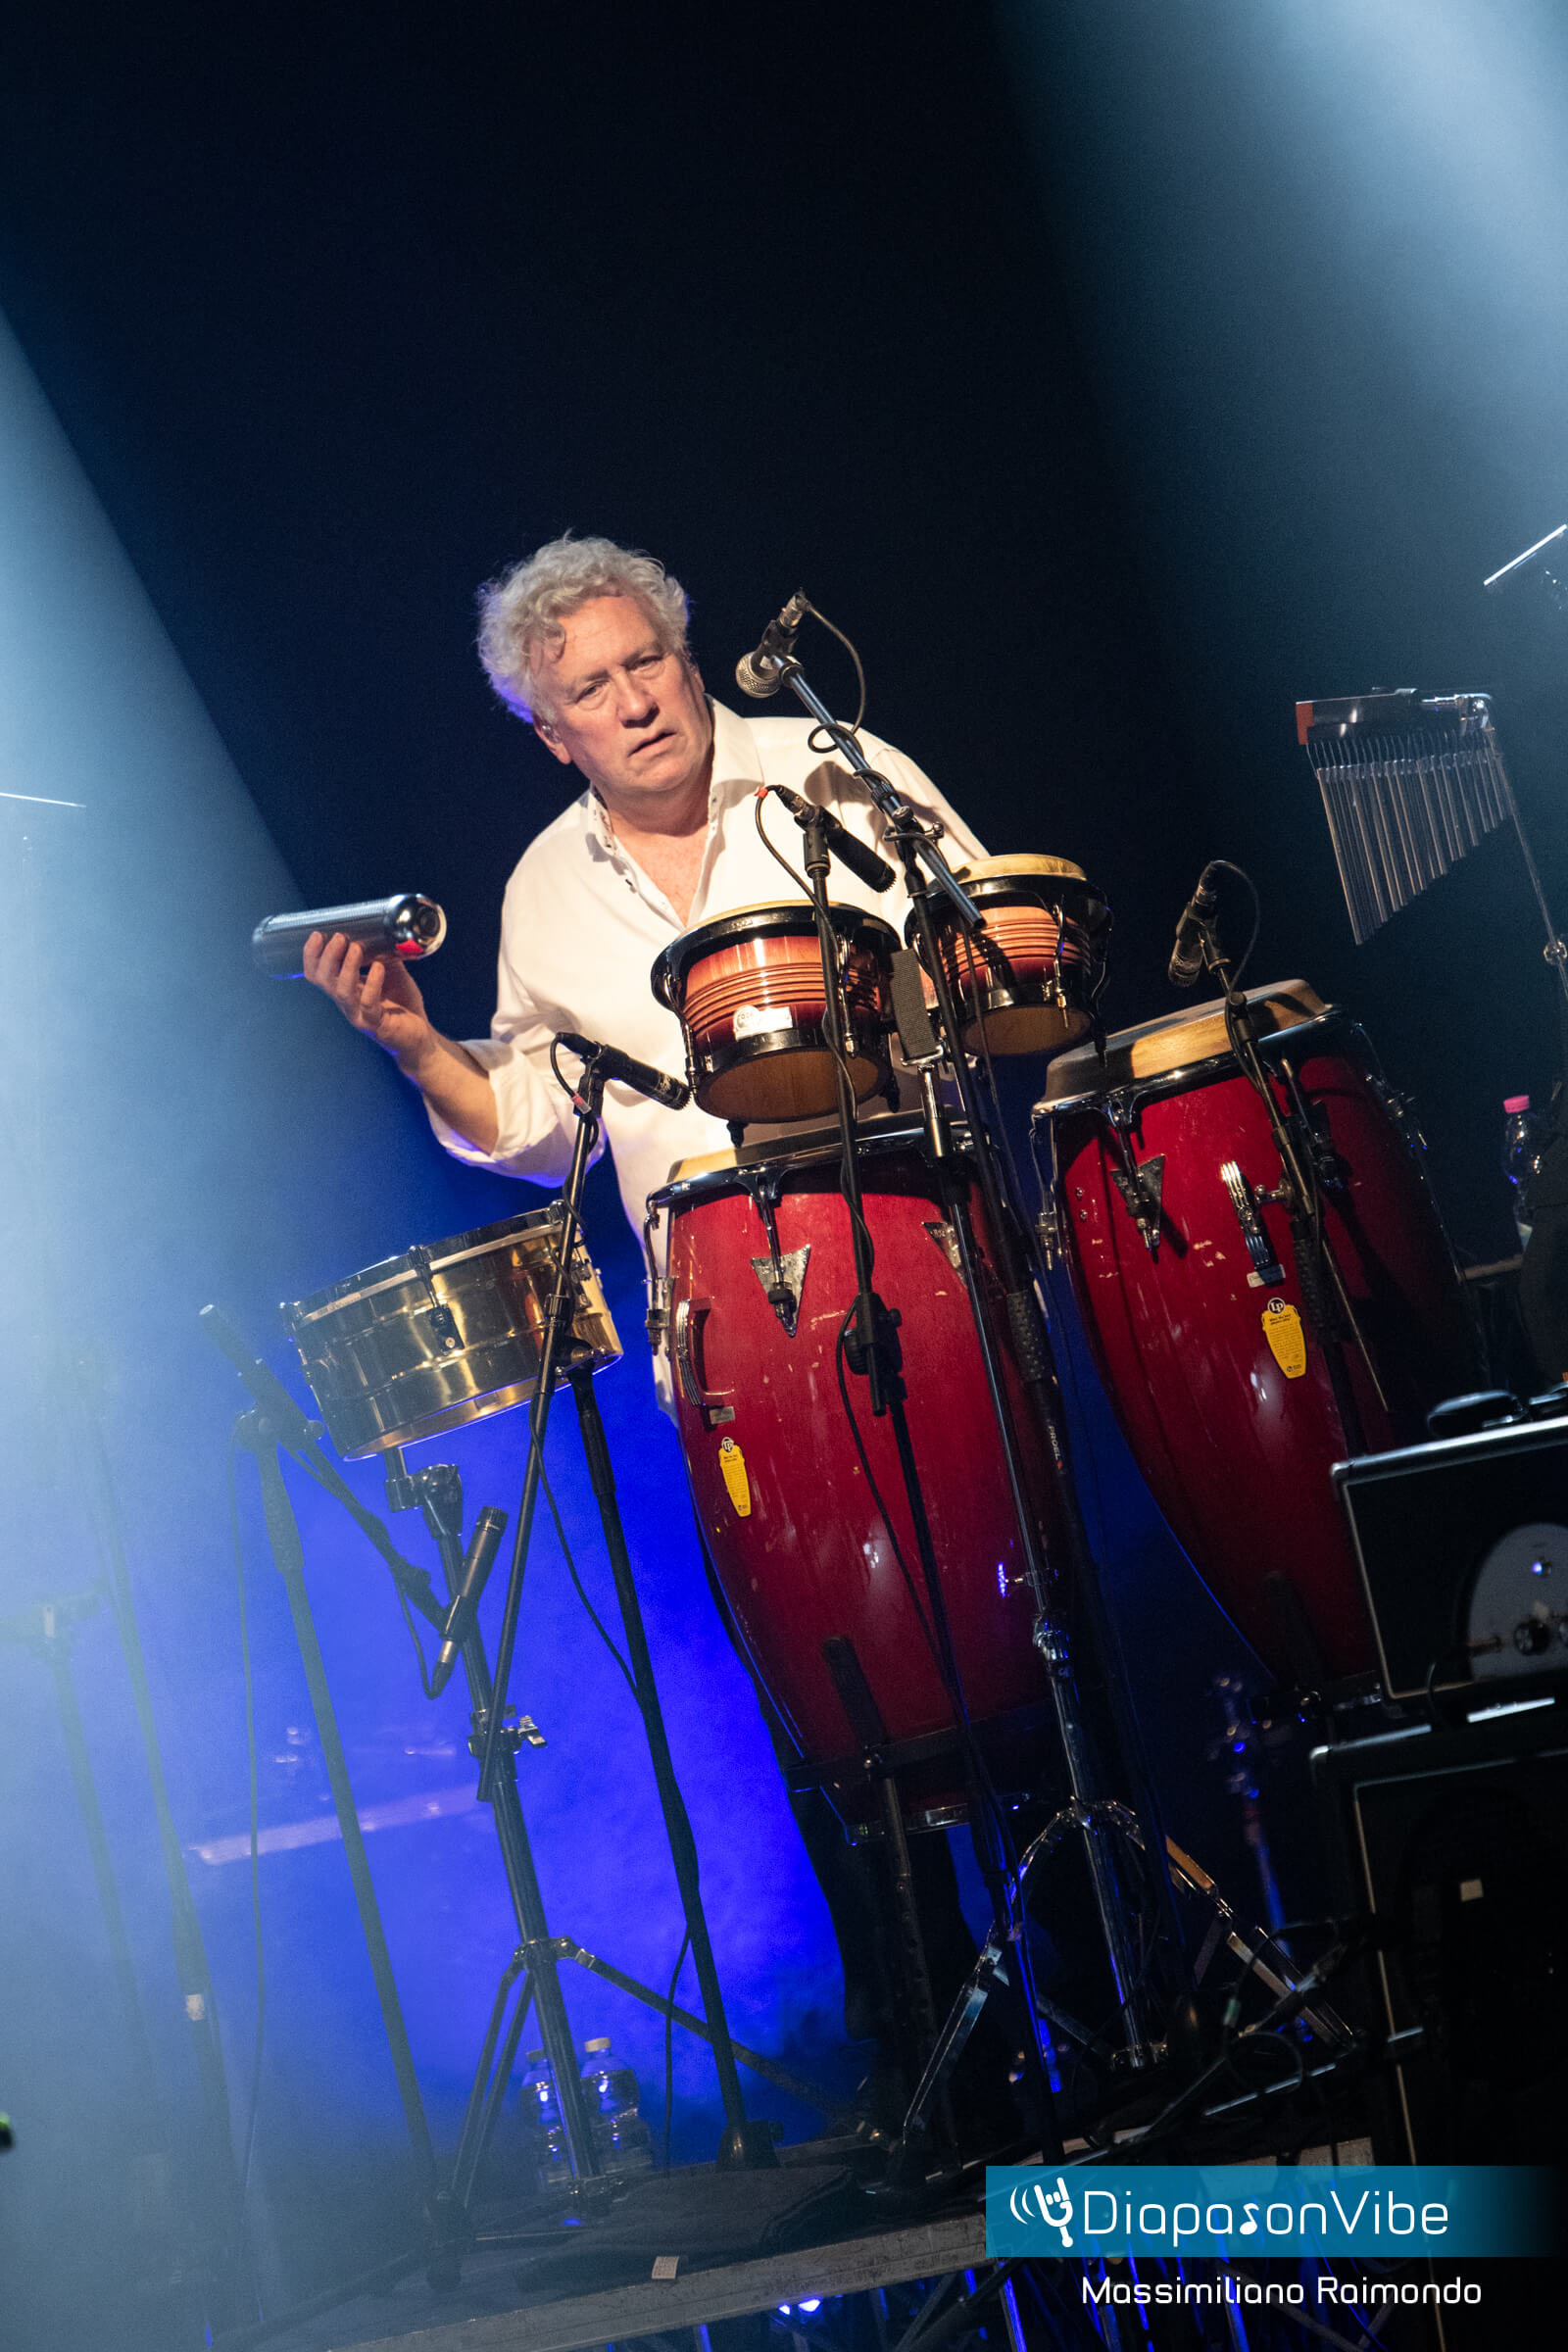 Danny Cummings with LP Percussions